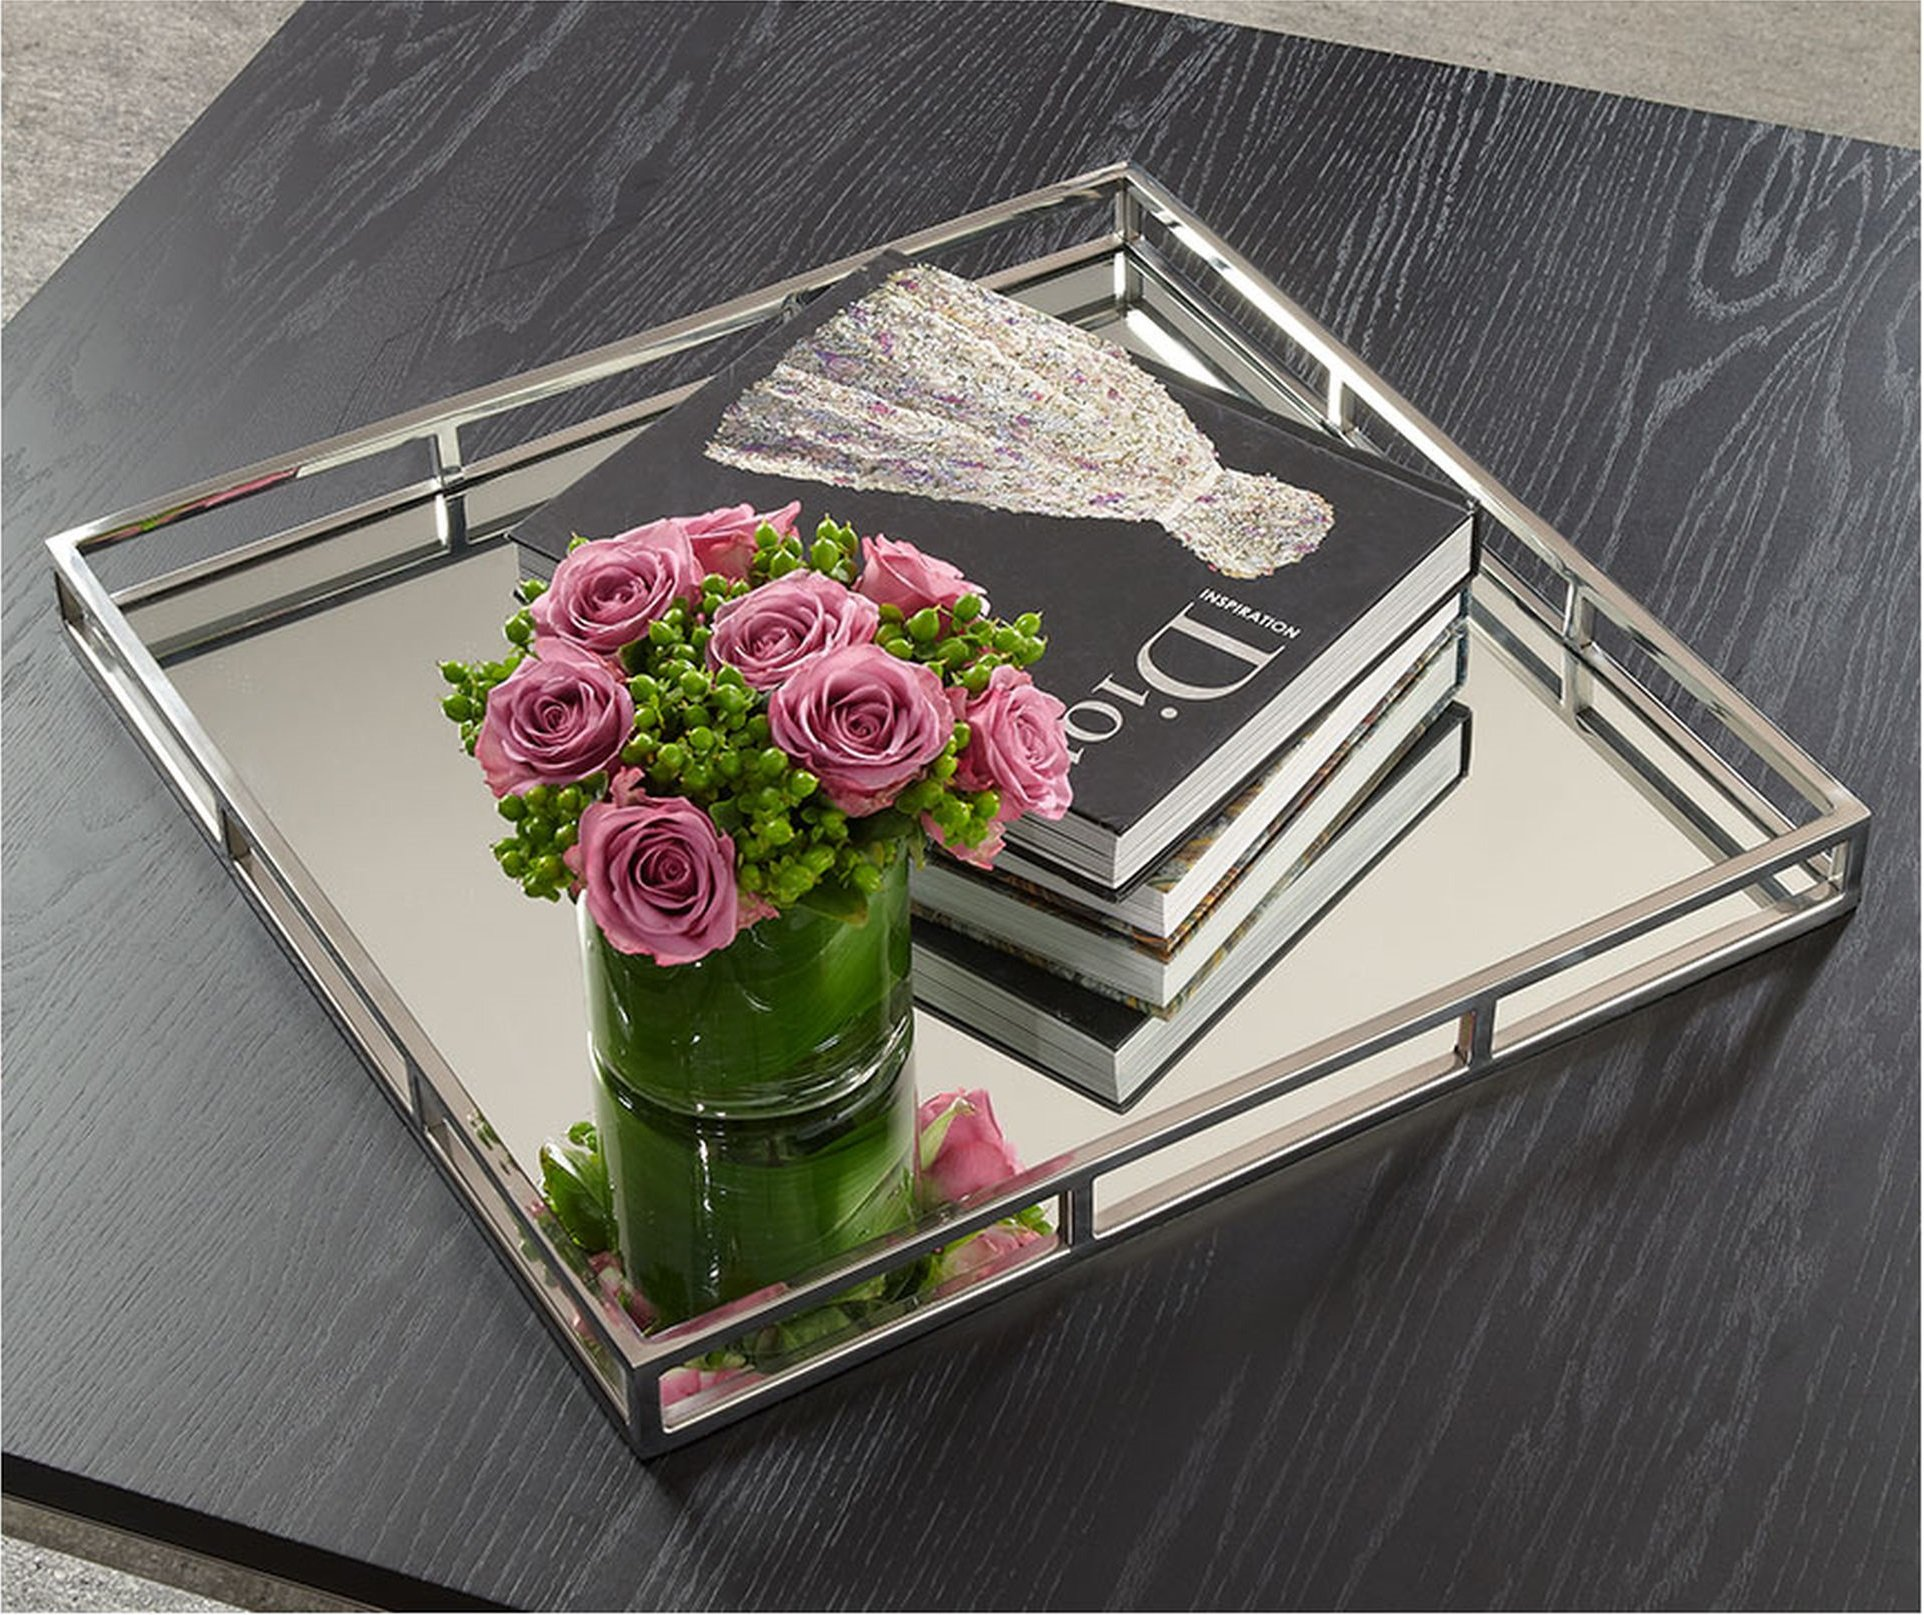 Le'raze Beautiful Mirrored Tray with Chrome Rails, Elegant Square Vanity Mirror Tray with Side Bars, Makes A Great Bling Gift 16 Inch by Le'raze